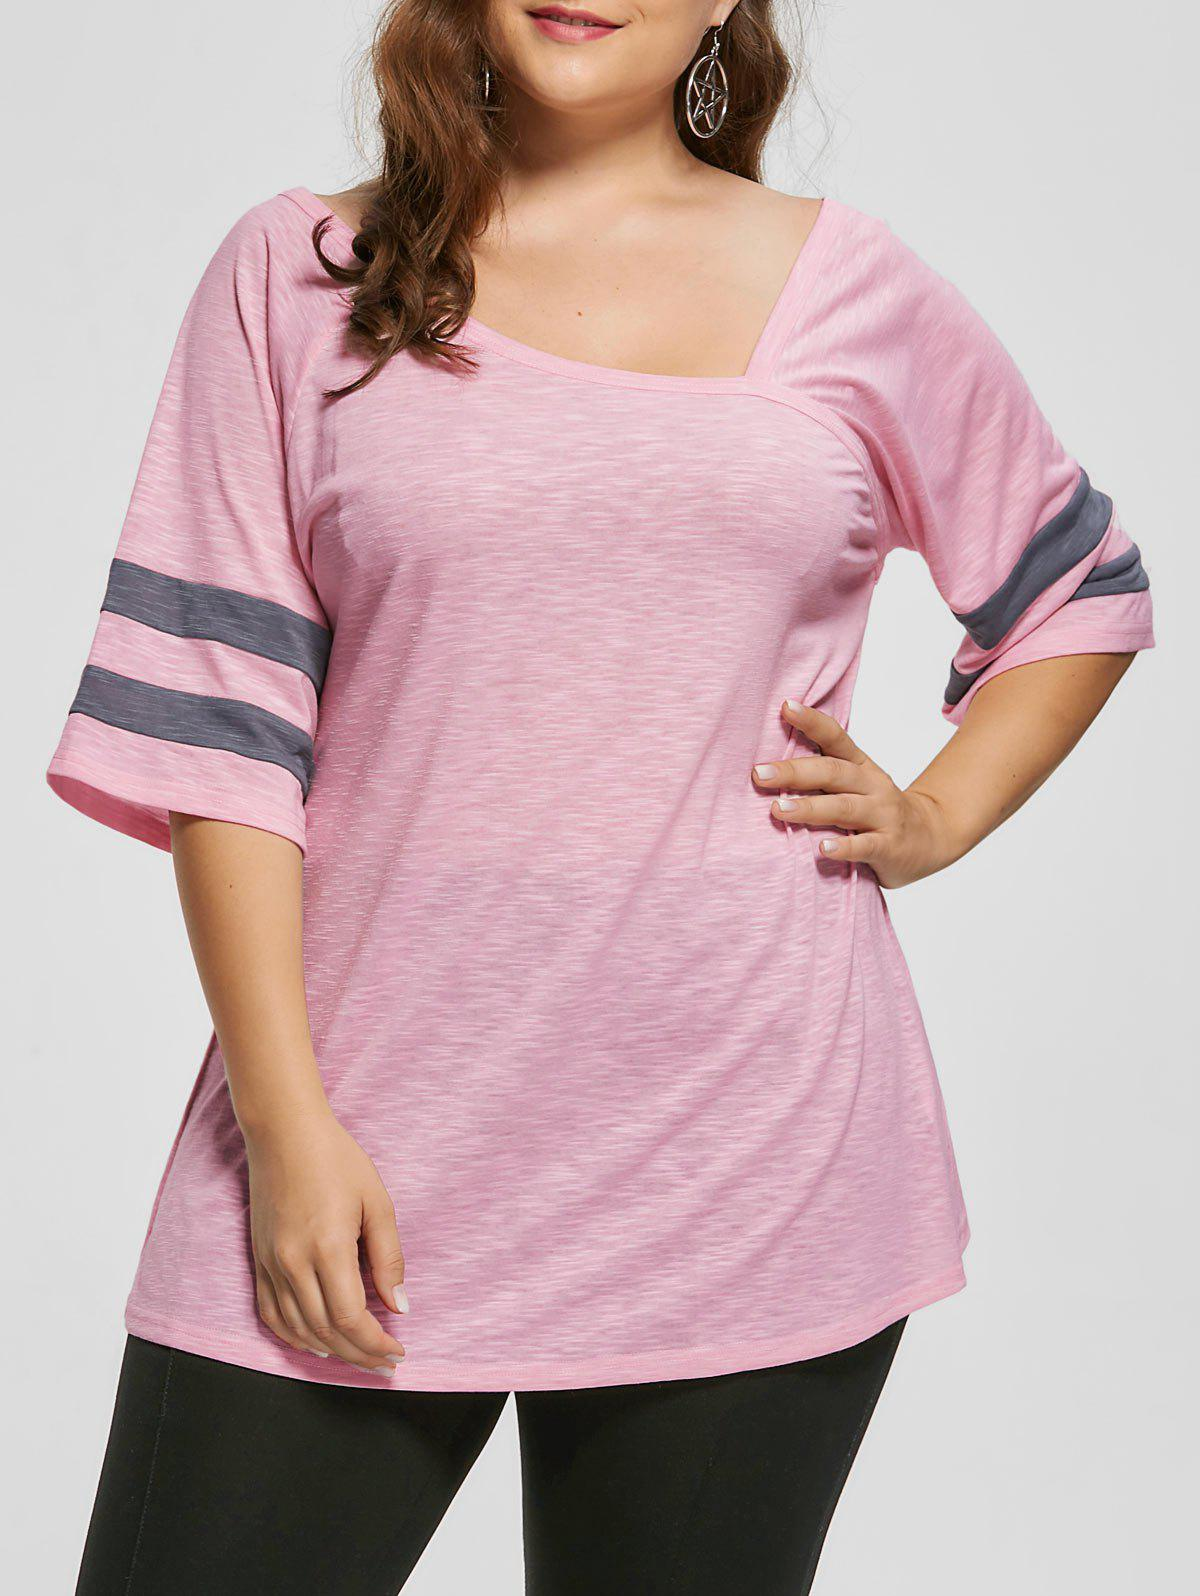 Plus Size Heather Skew Collar Tunic TopWOMEN<br><br>Size: 5XL; Color: LIGHT PINK; Material: Polyester,Spandex; Shirt Length: Long; Sleeve Length: Half; Collar: Skew Collar; Style: Casual; Season: Fall,Spring,Summer; Pattern Type: Solid; Weight: 0.3000kg; Package Contents: 1 x Top;